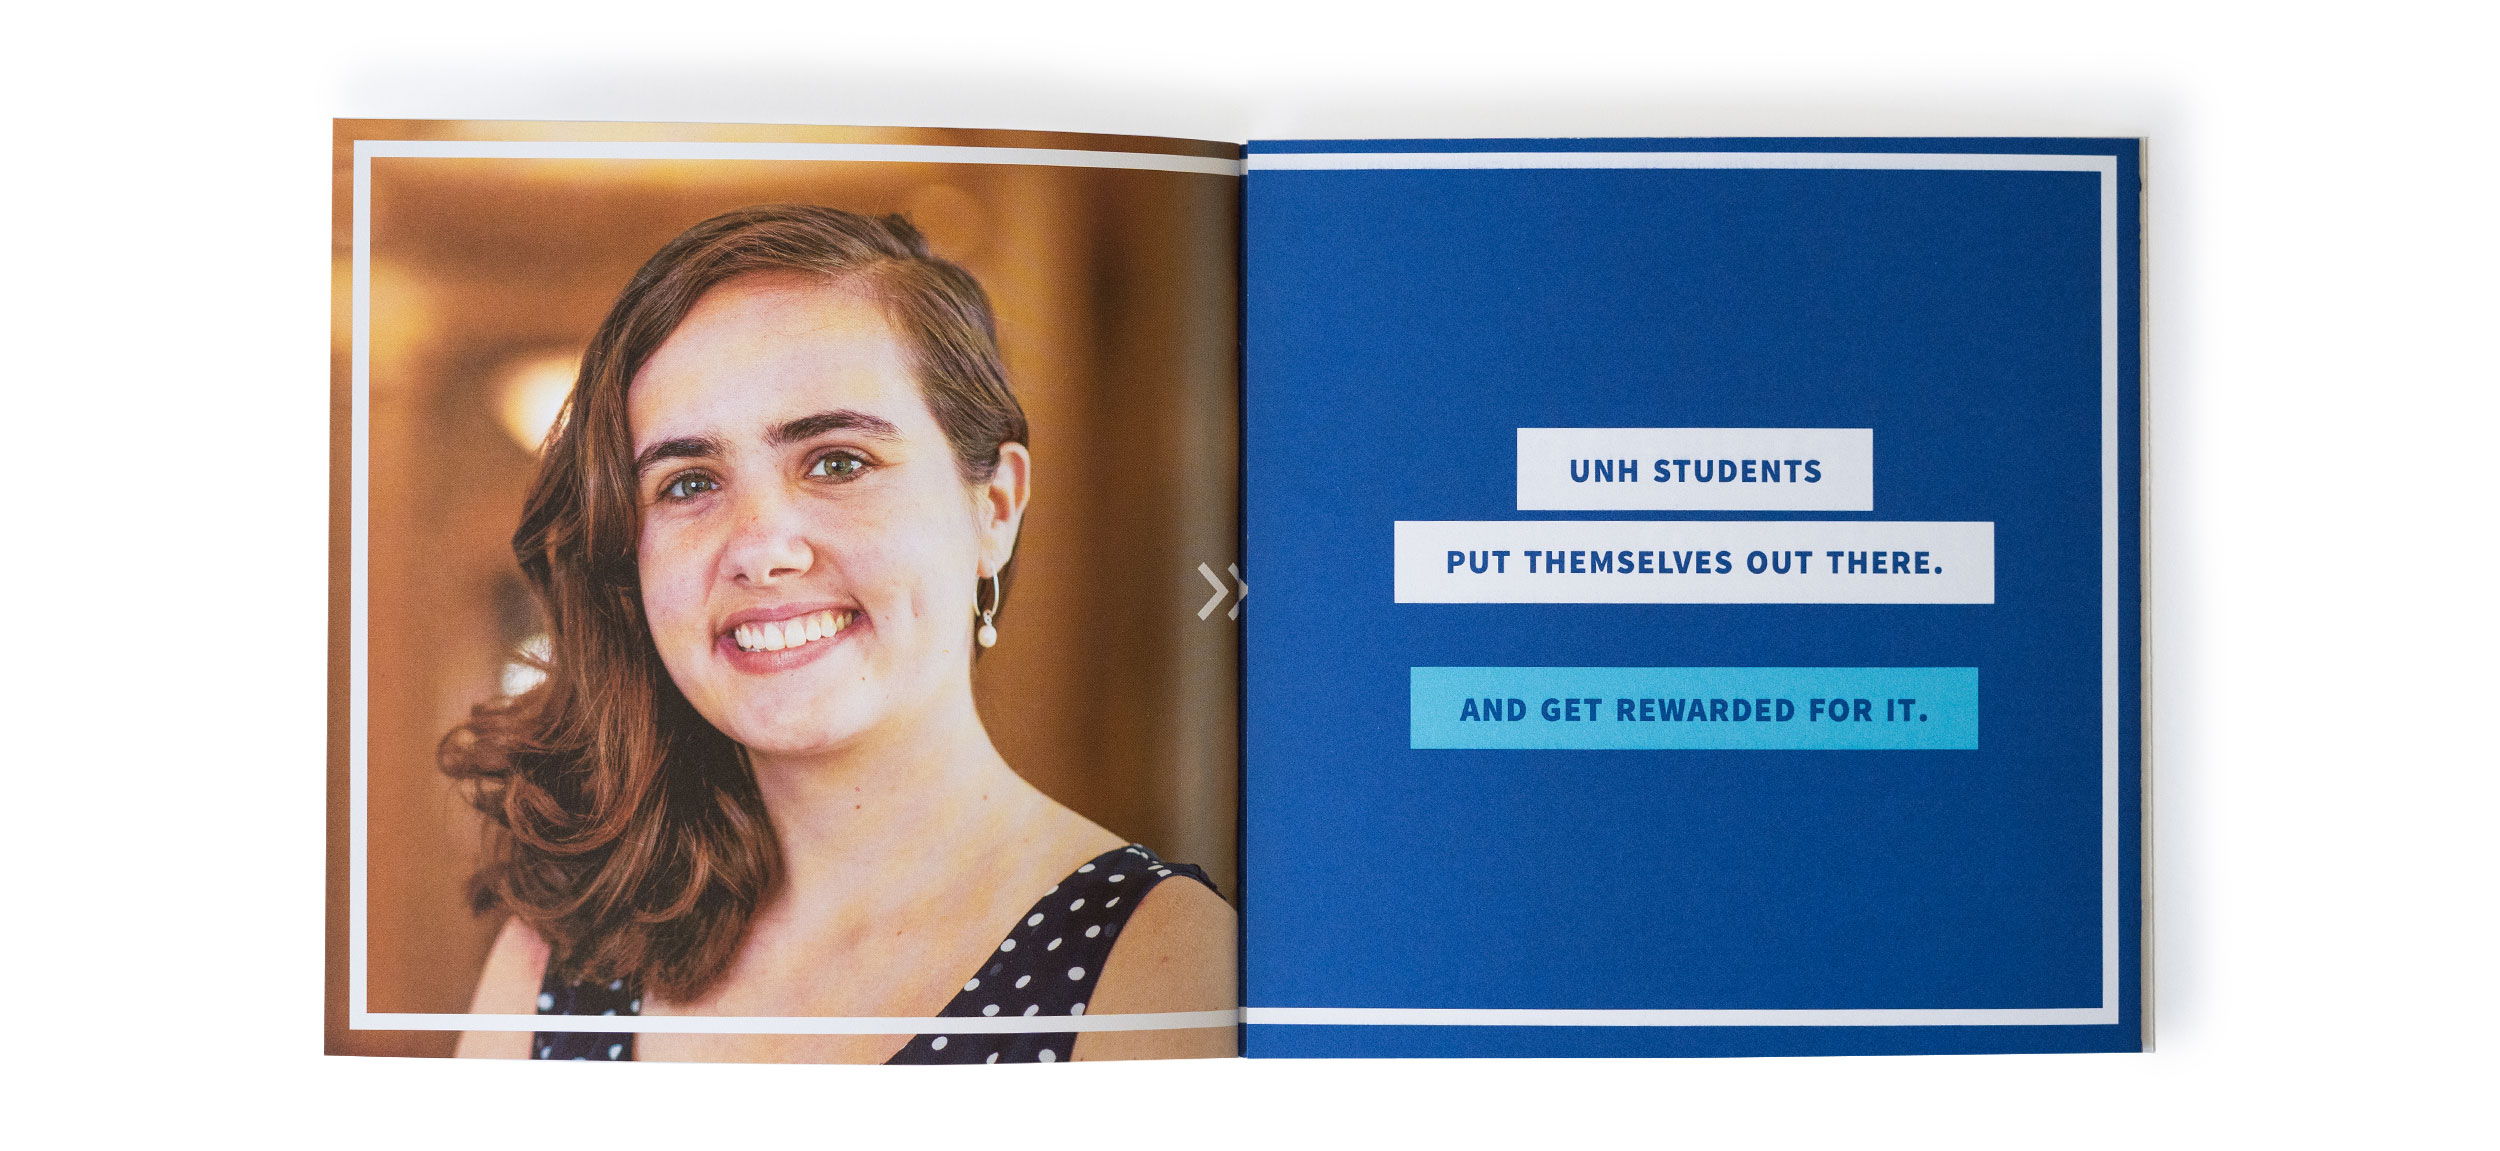 UNH Start Here Go Anywhere Student Recruitment Print Piece Foldout Spread Design - Loren Marple